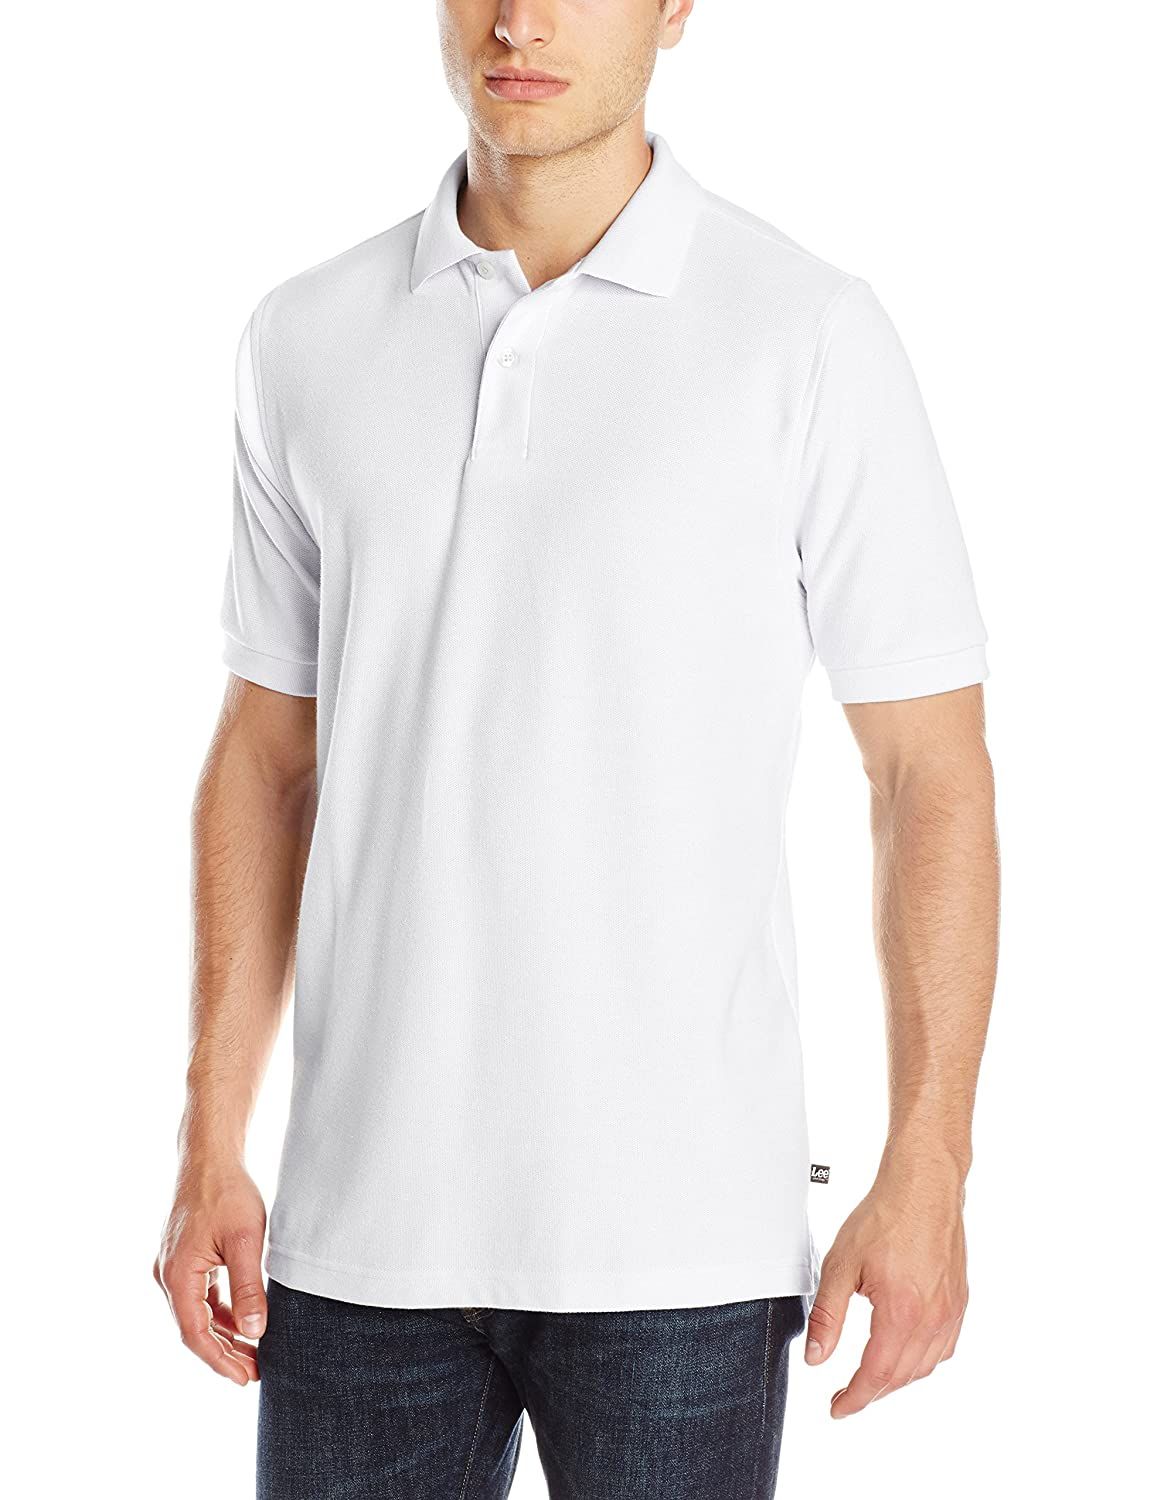 5a958502 Lee Brand Polo Shirts | Top Mode Depot